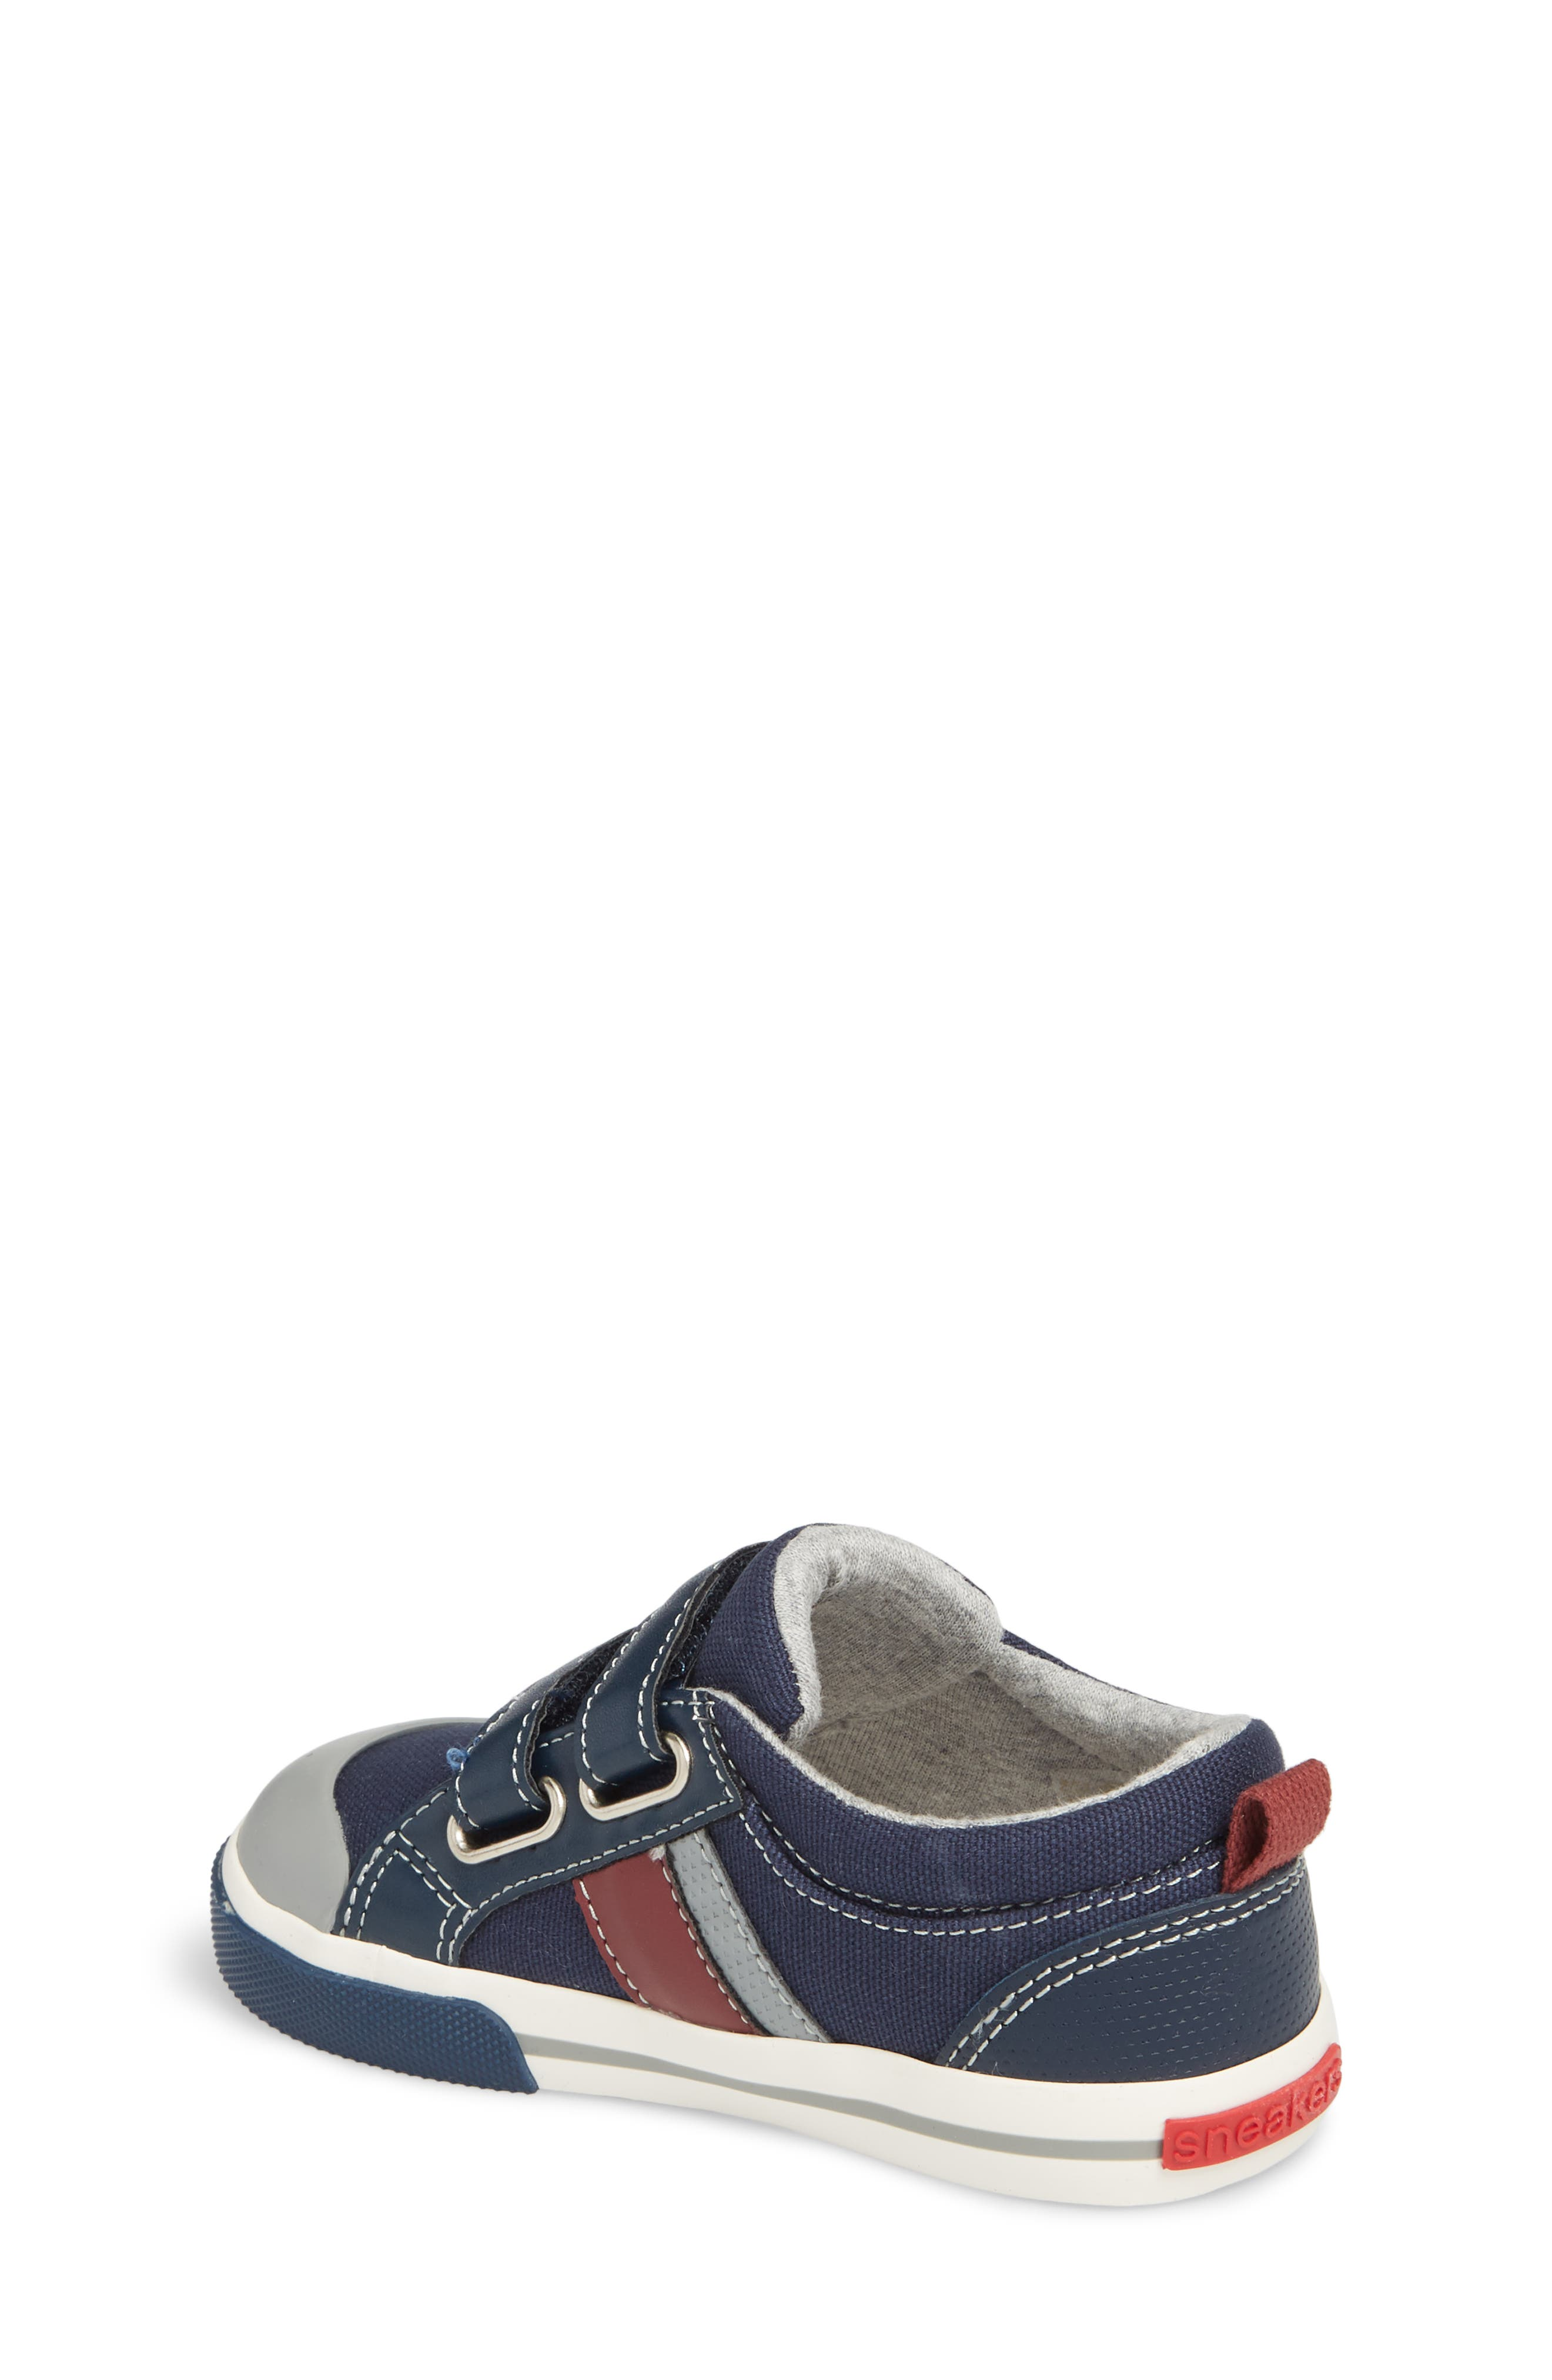 'Russell' Sneaker,                             Alternate thumbnail 2, color,                             NAVY/ RED